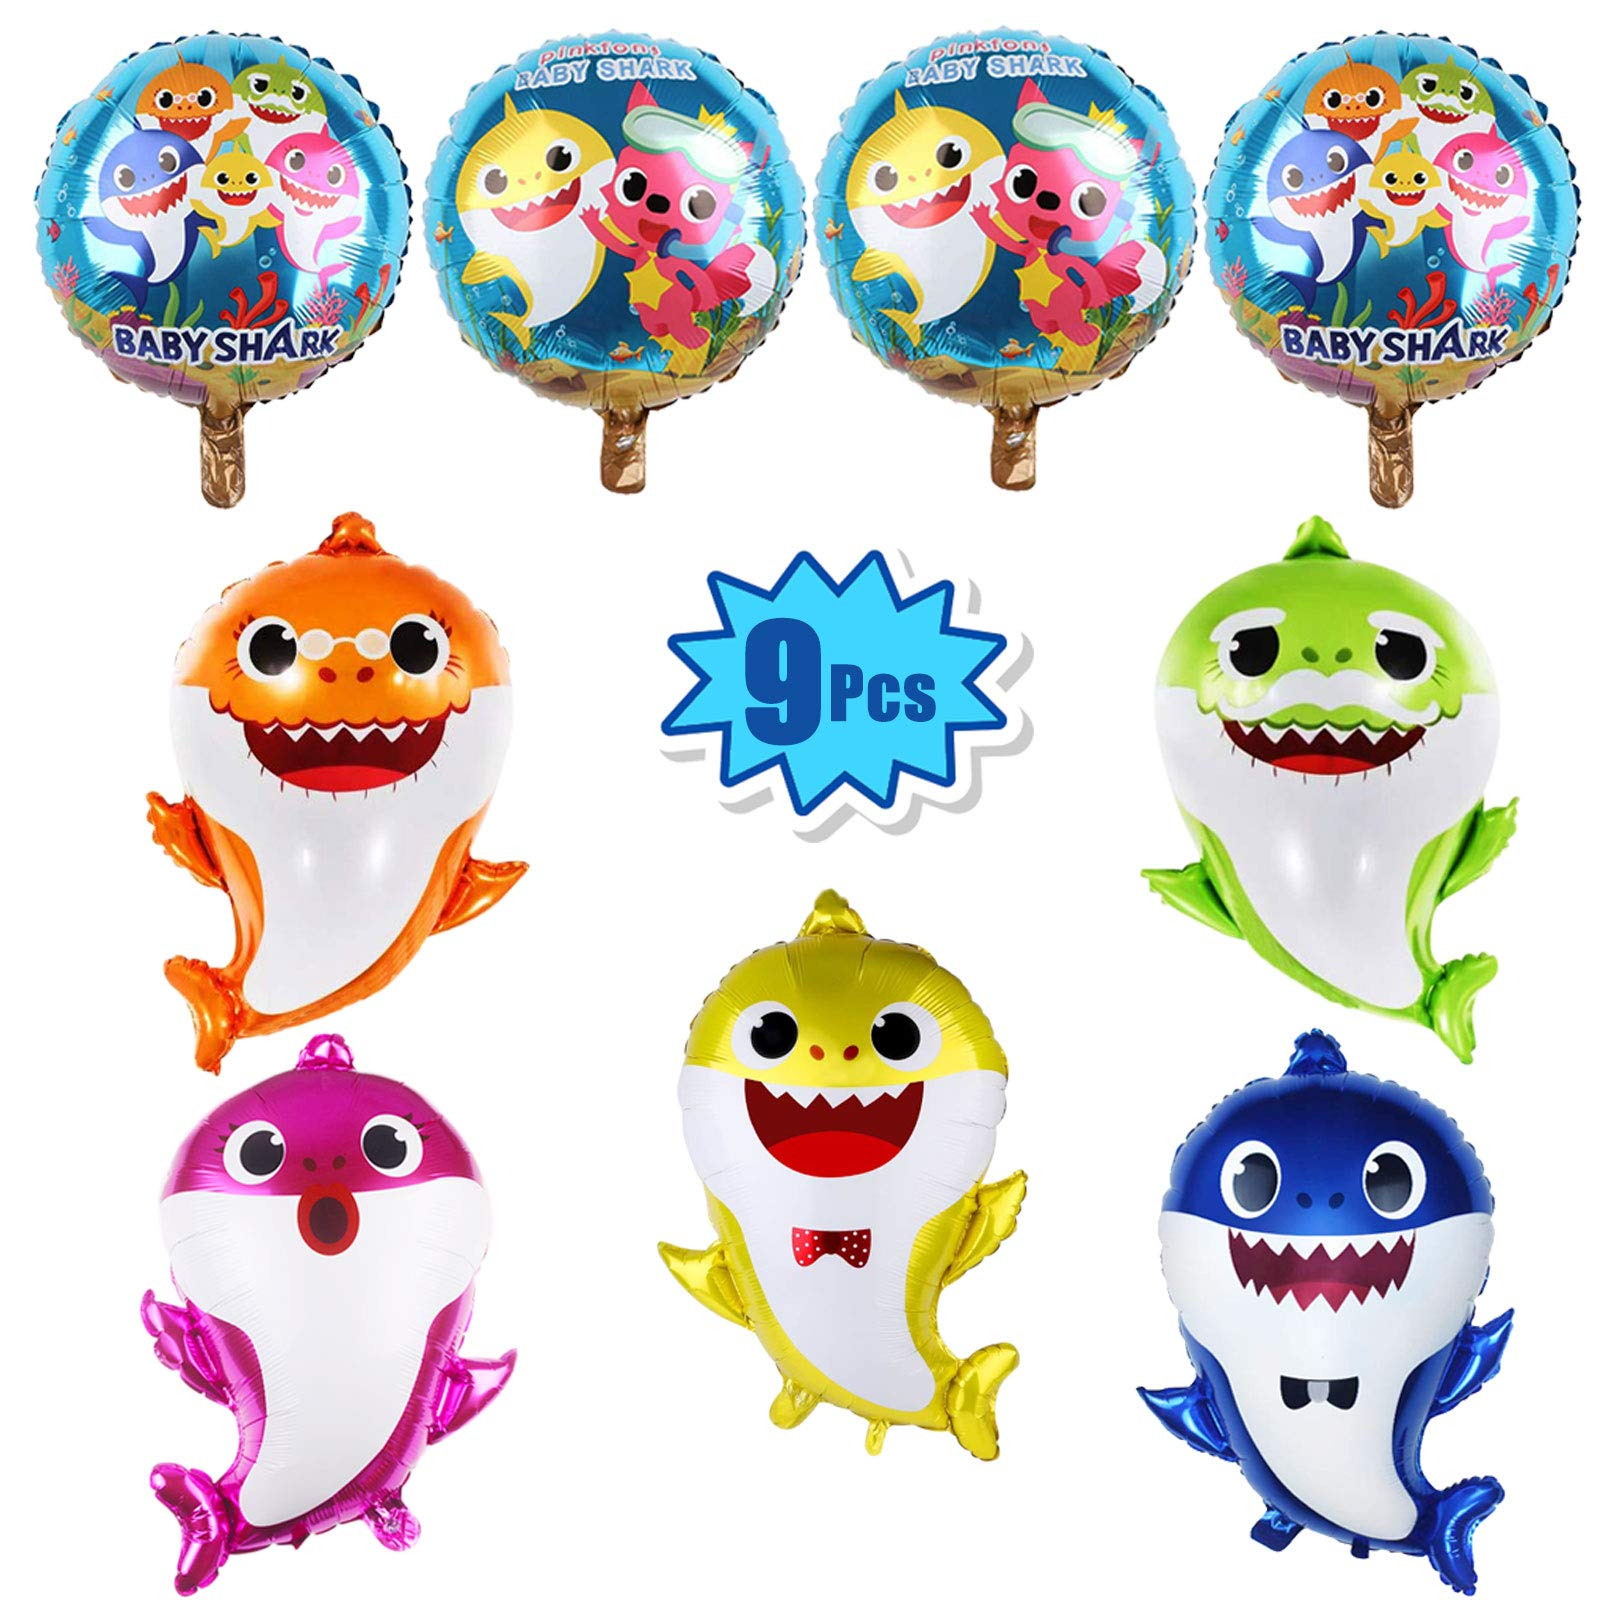 """9 Pcs Baby Shark Party Helium Balloons - 26"""" Shark Family Foil Balloons with 4 Pcs 17"""" Round Balloons for Shark Theme Party Supplies/ Baby Shower Party Decorations"""